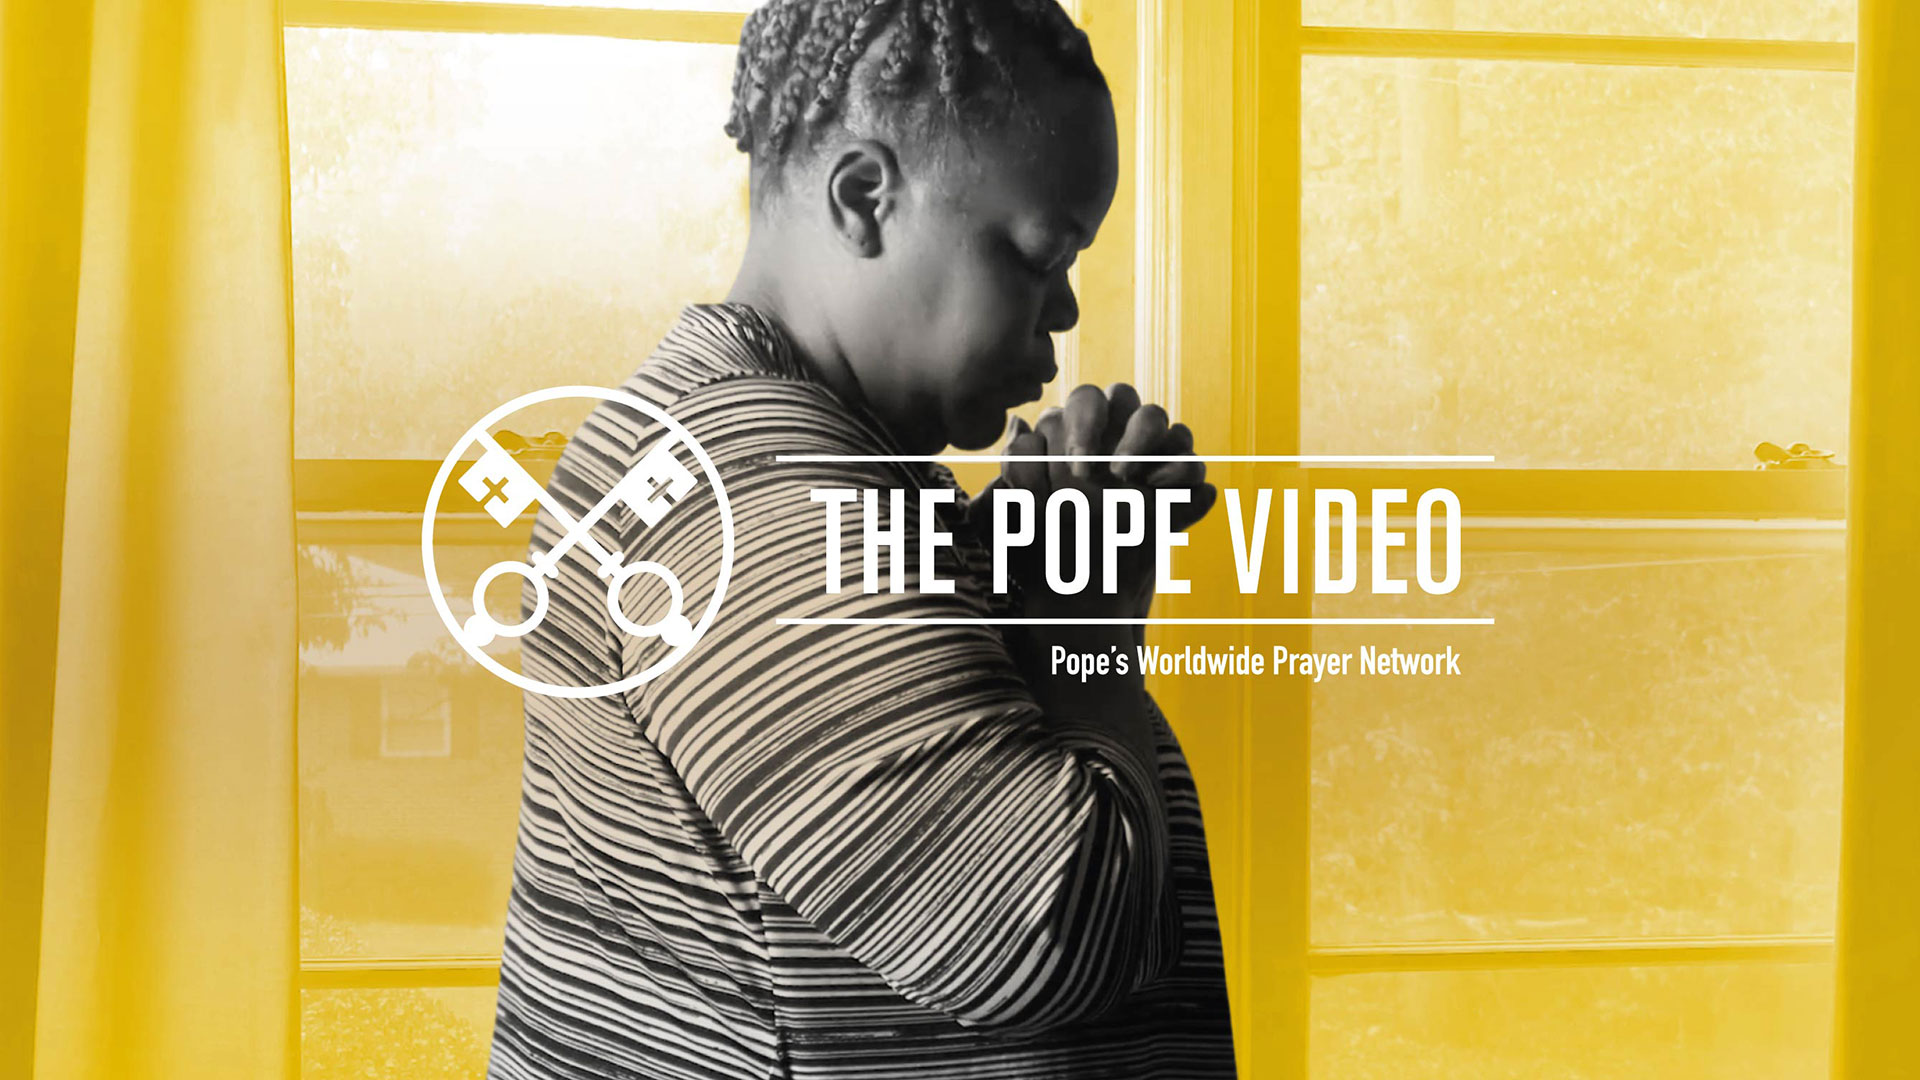 For a life of prayer – The Pope Video